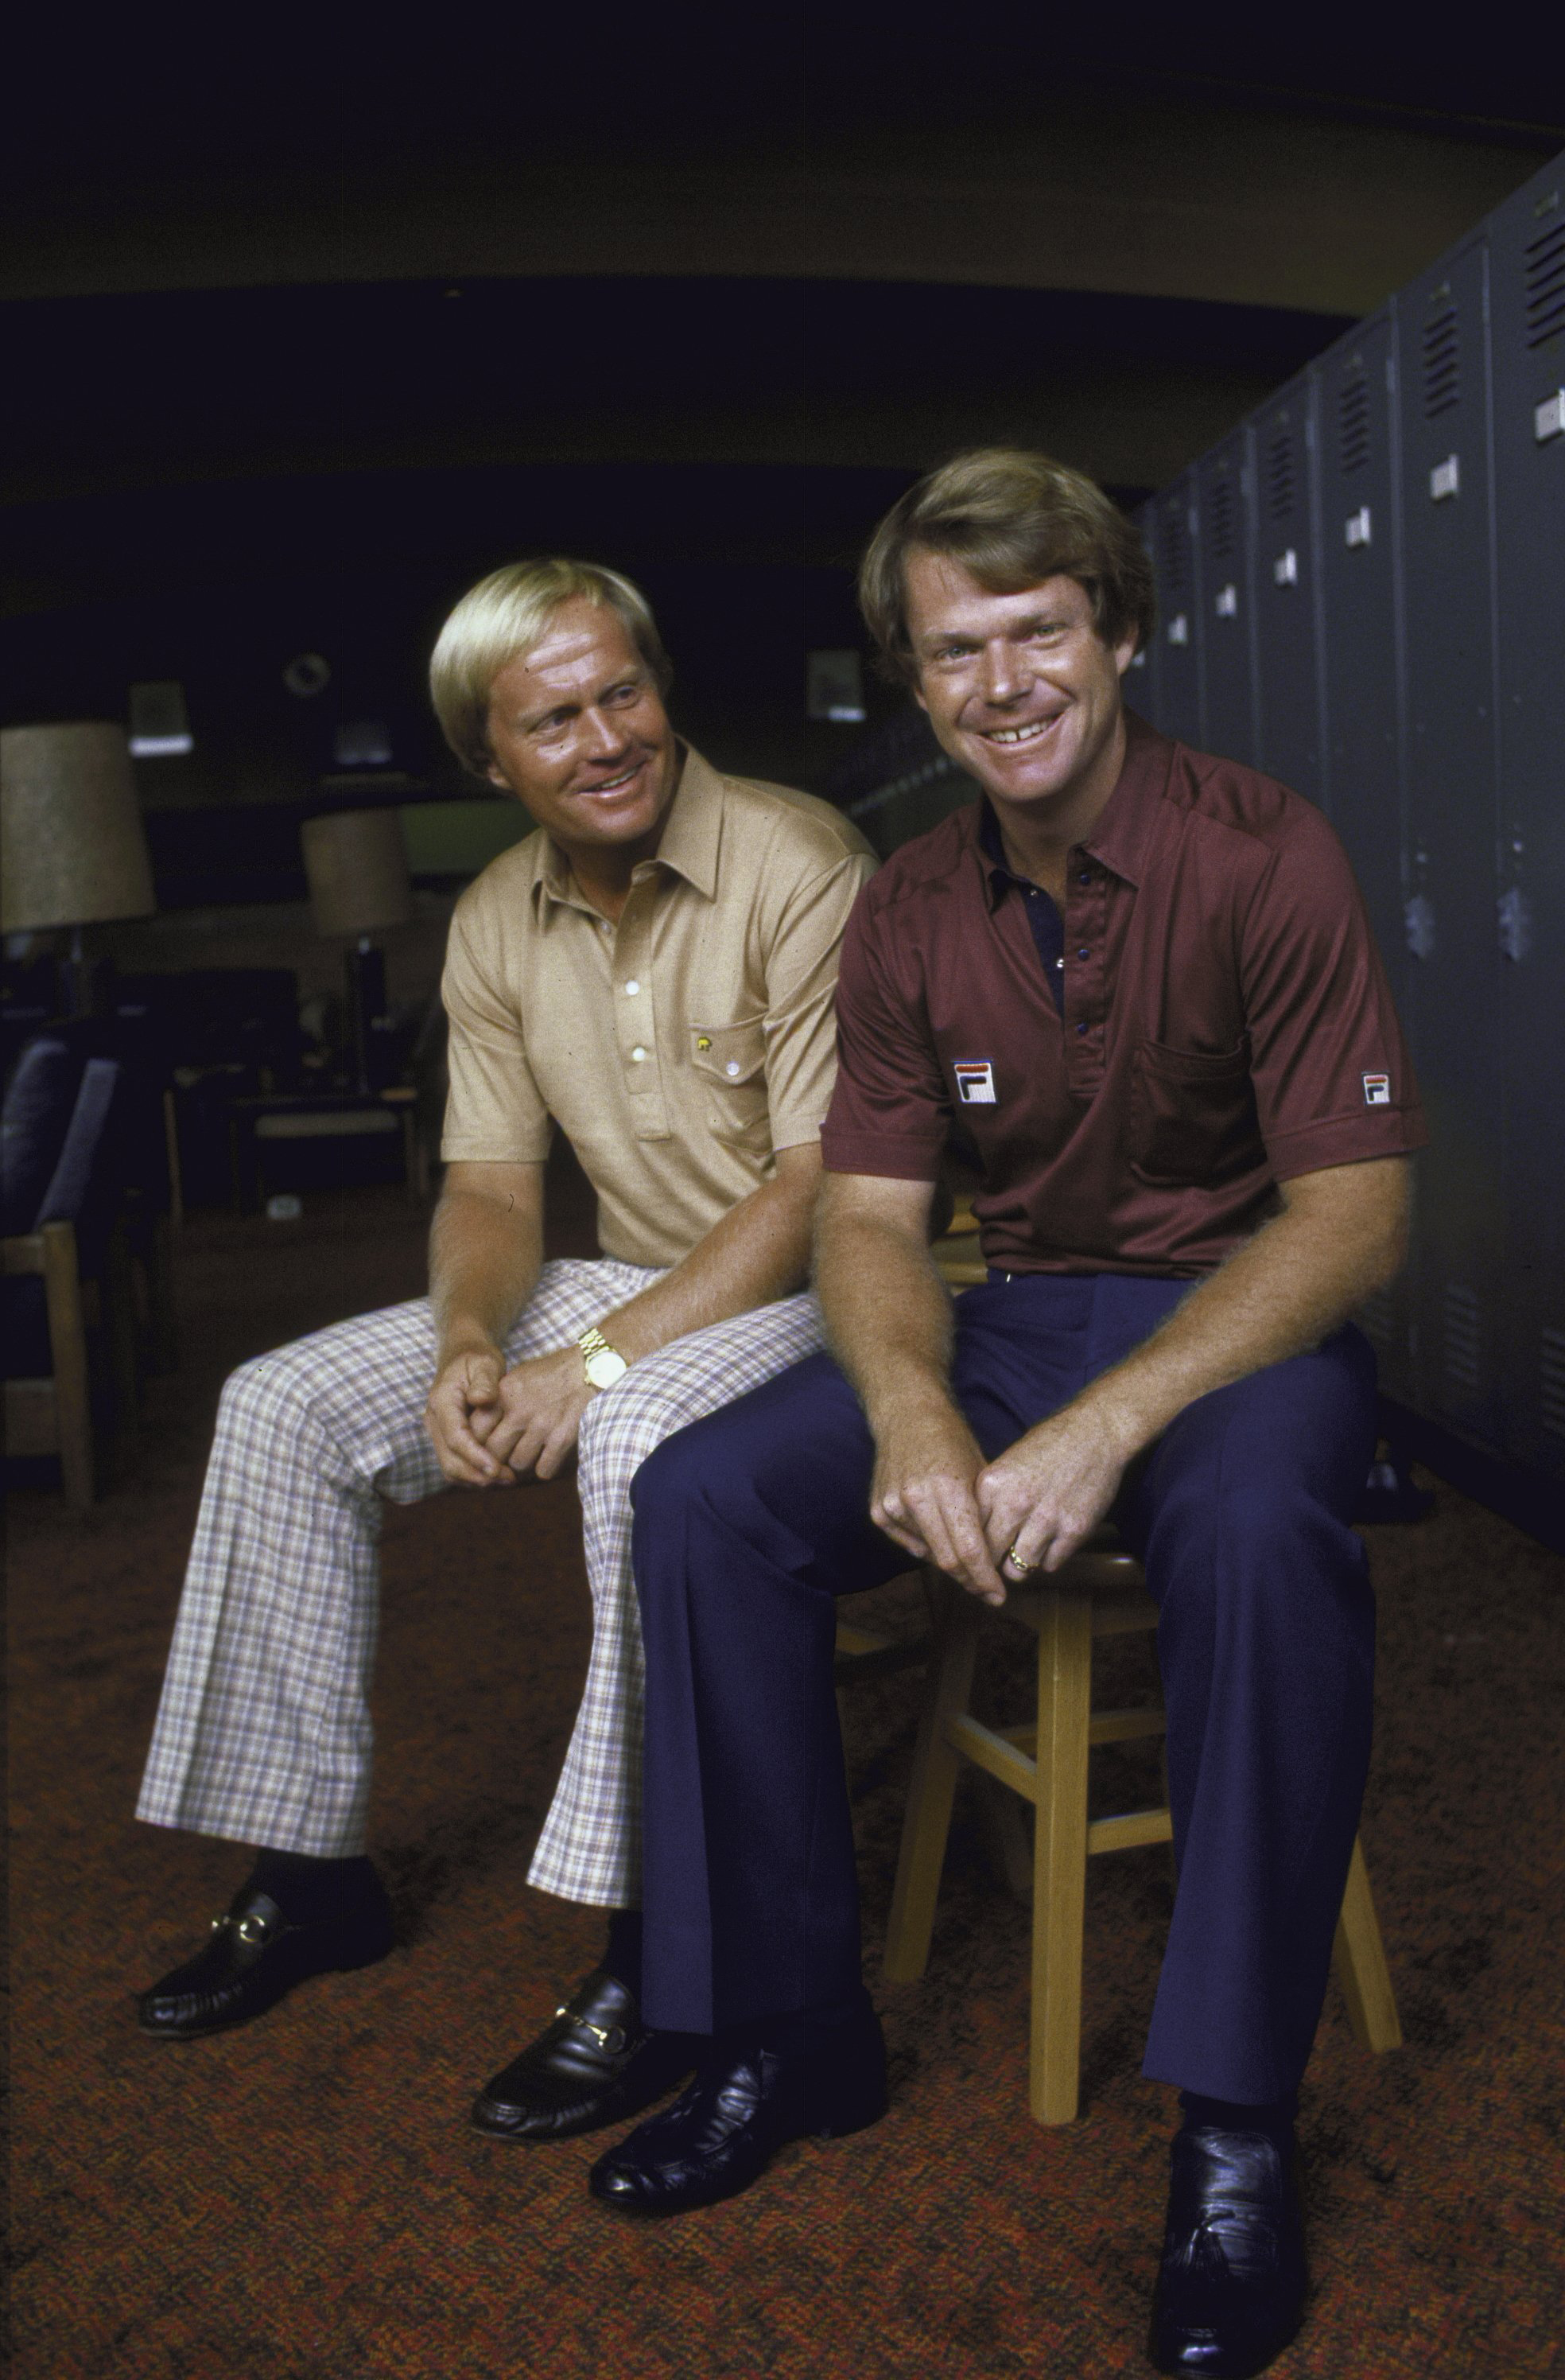 Jack Nicklaus and Tom Watson at Augusta National Golf Club in 1981.